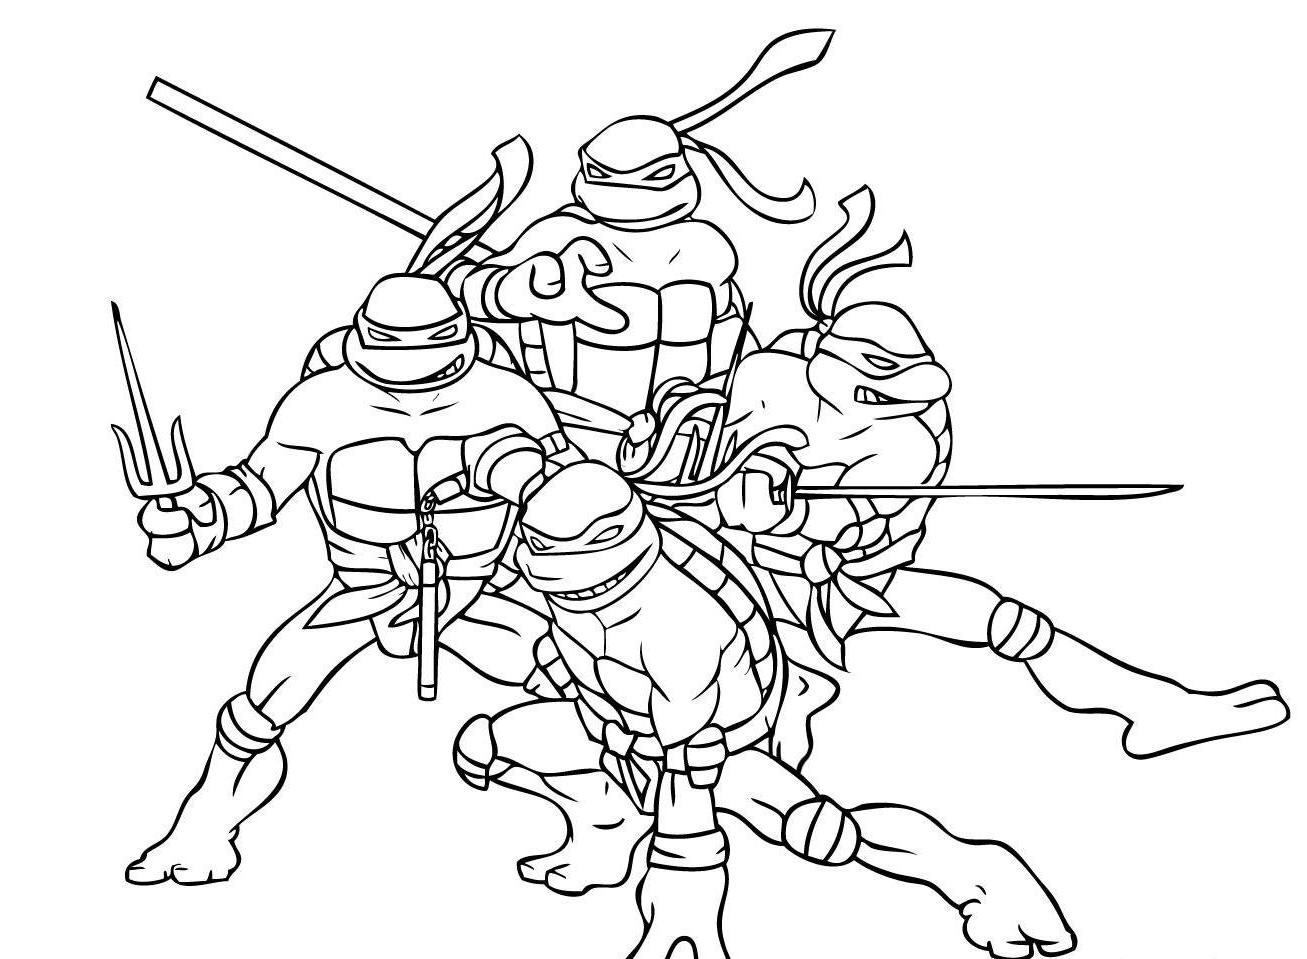 coloring pages turtles ninja 15 ninja turtles coloring page to print print color craft